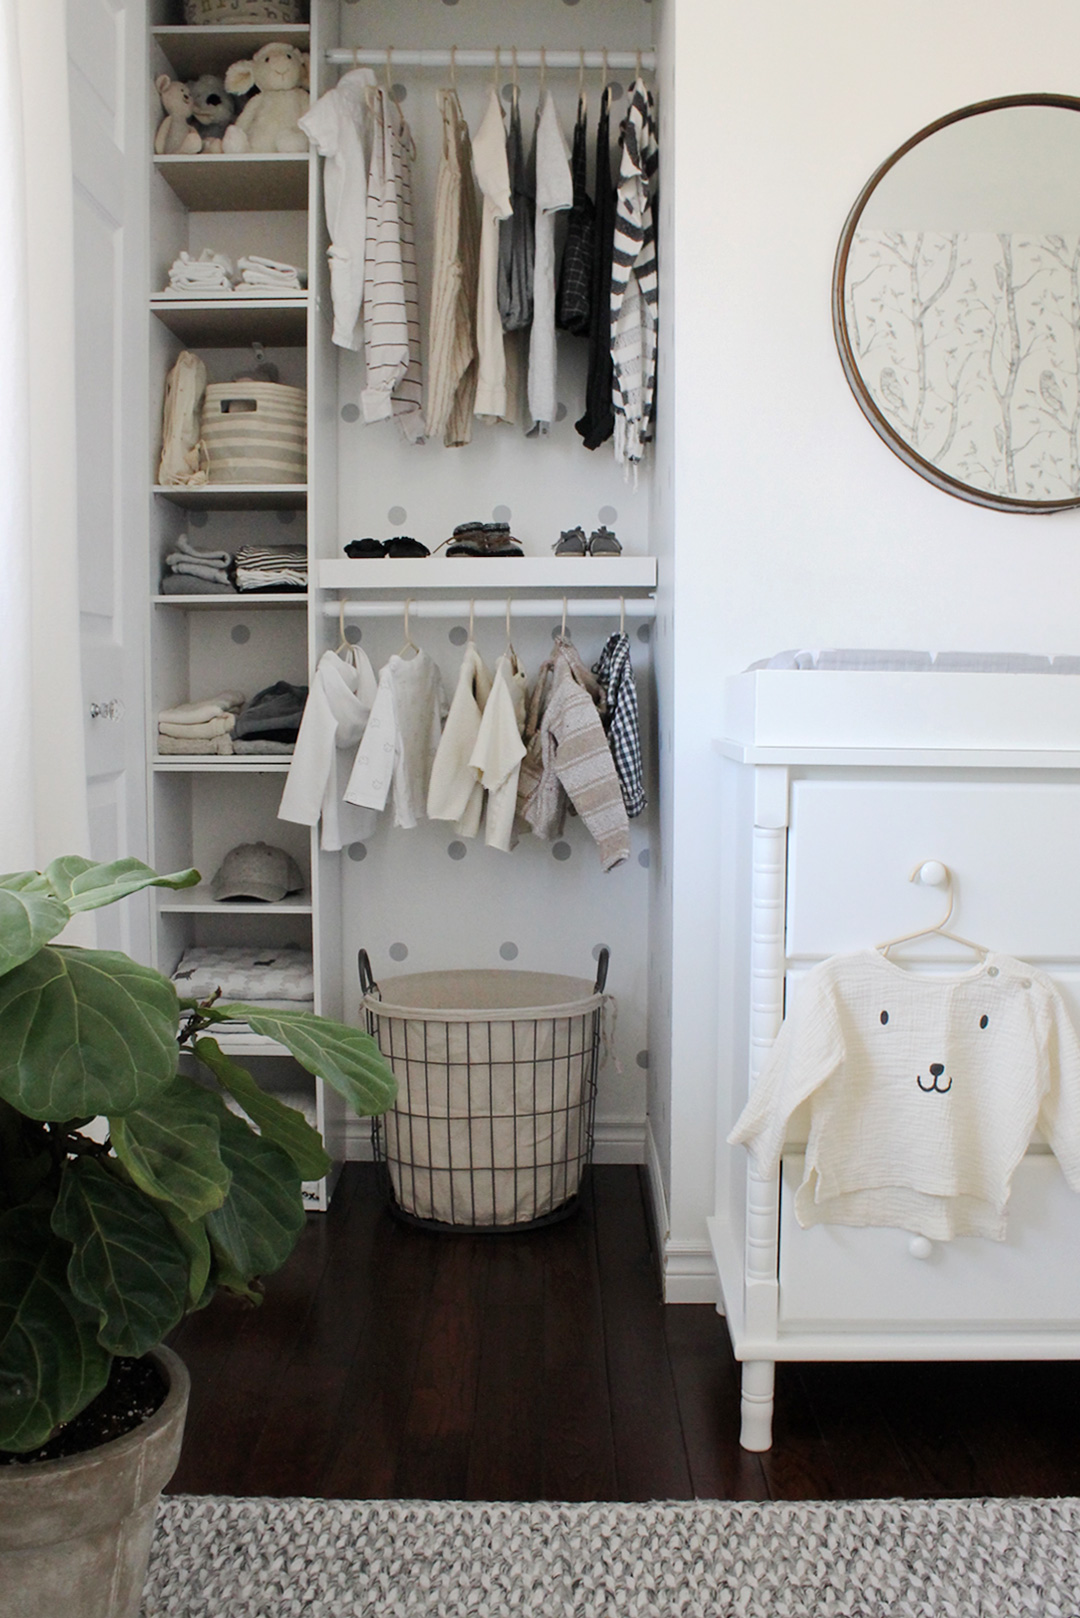 Nursery Closet with Wall Decals Design: @StudioMeld 2020 Nursery Trends: Pretty Closets